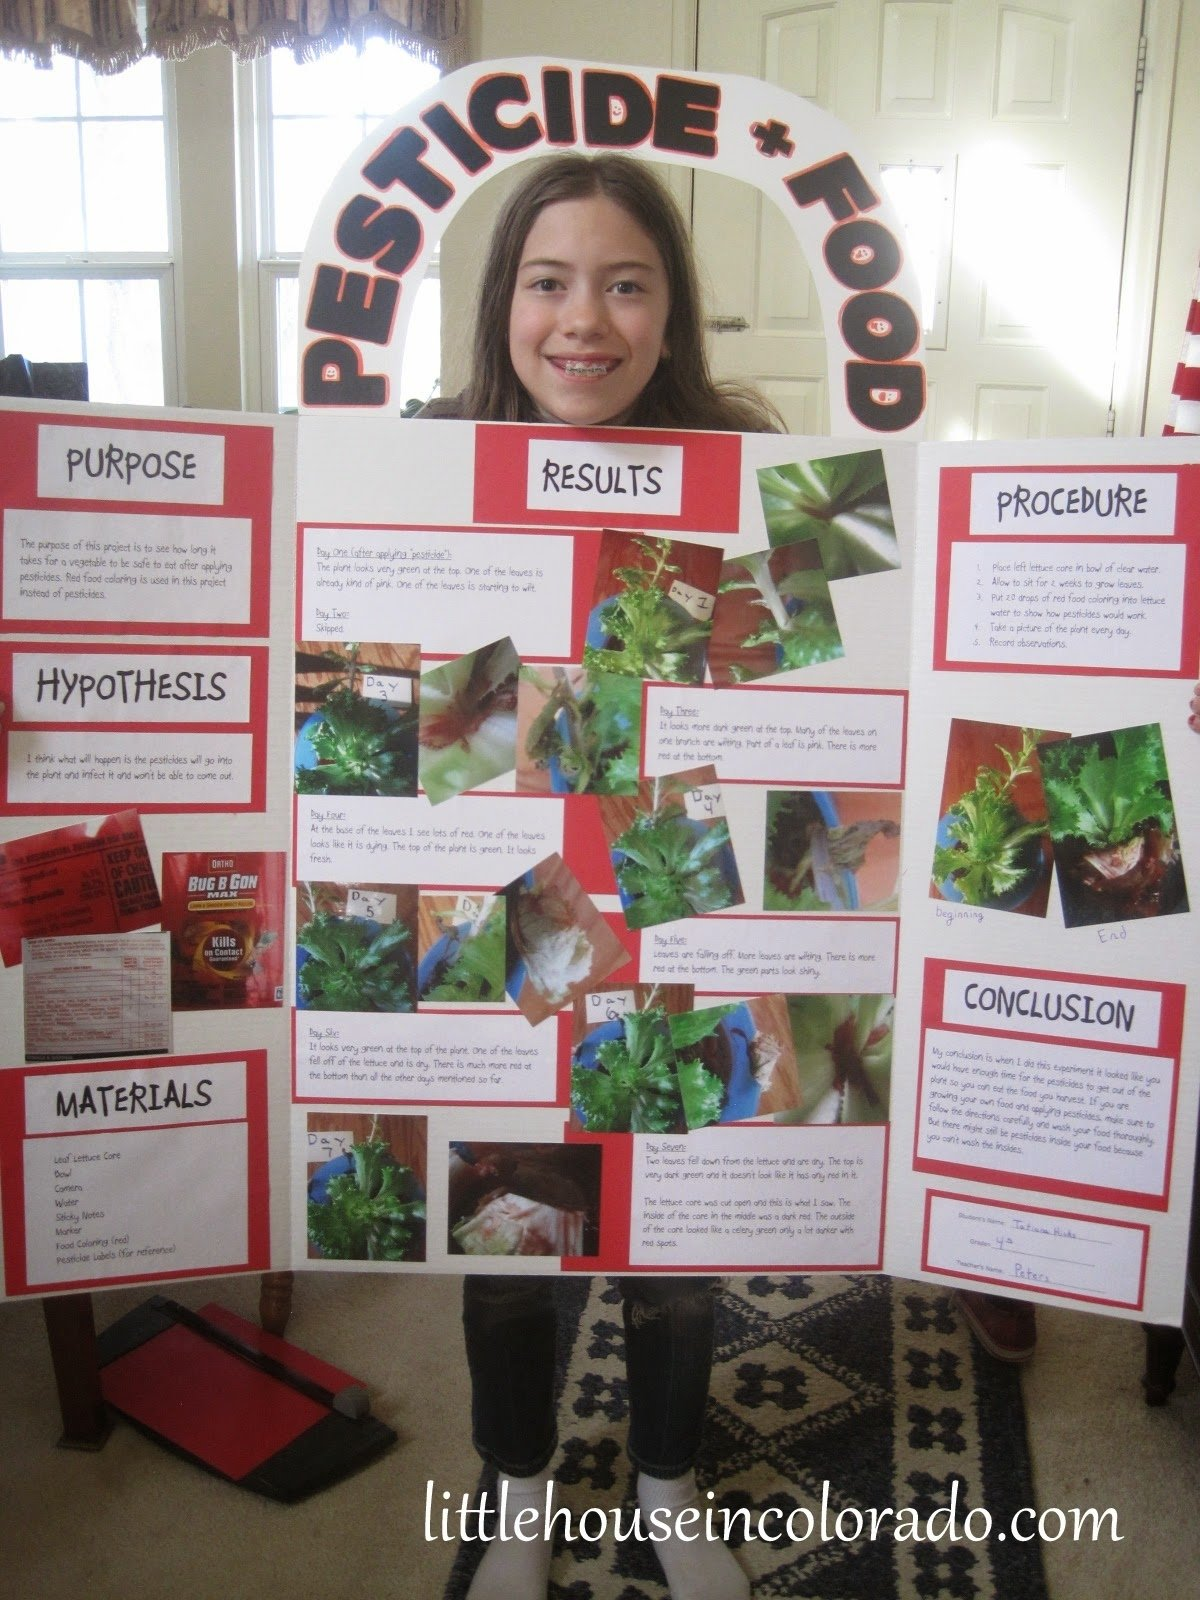 10 Fashionable Science Fair Ideas With Food little house in colorado 4th grade science fair project pesticides 2020